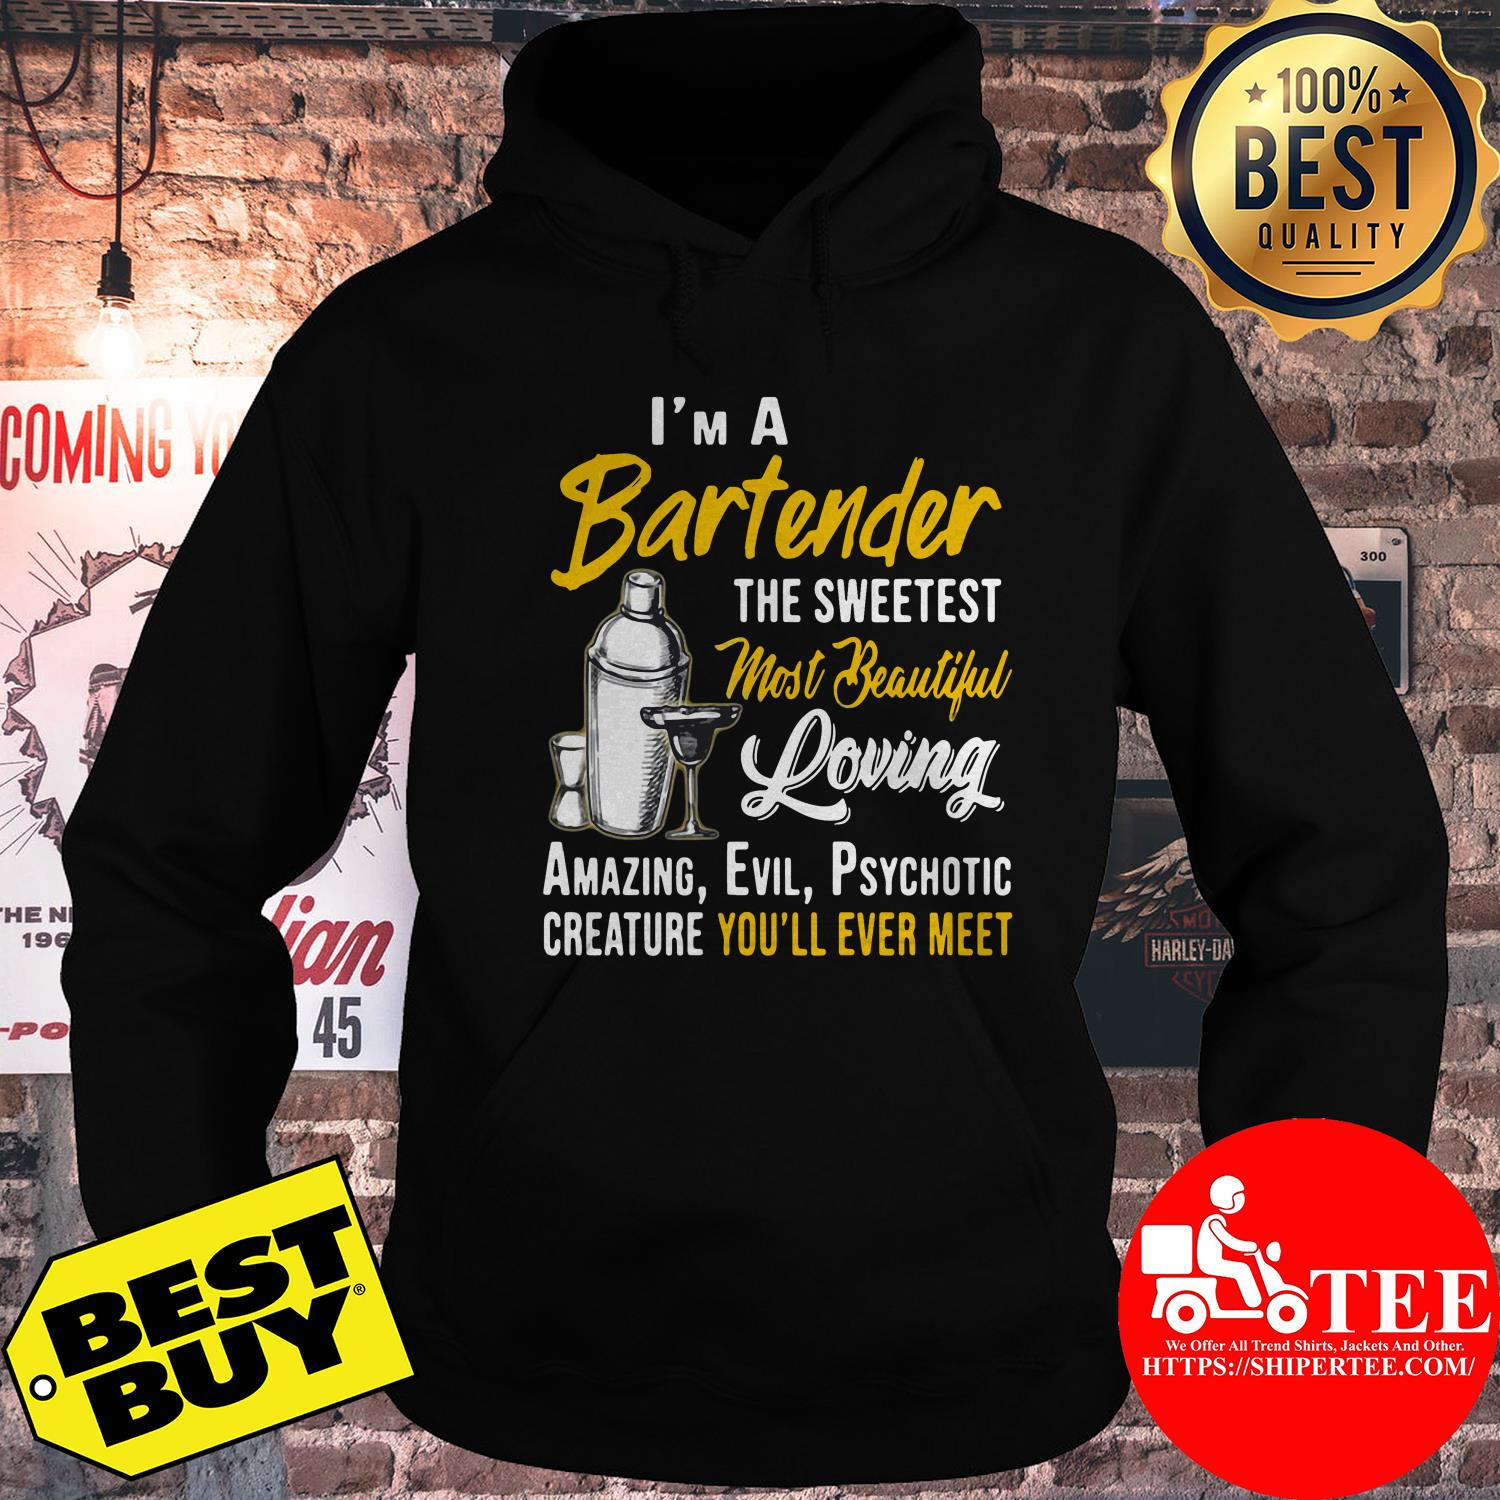 I'm a bartender the sweetest most beautiful loving hoodie